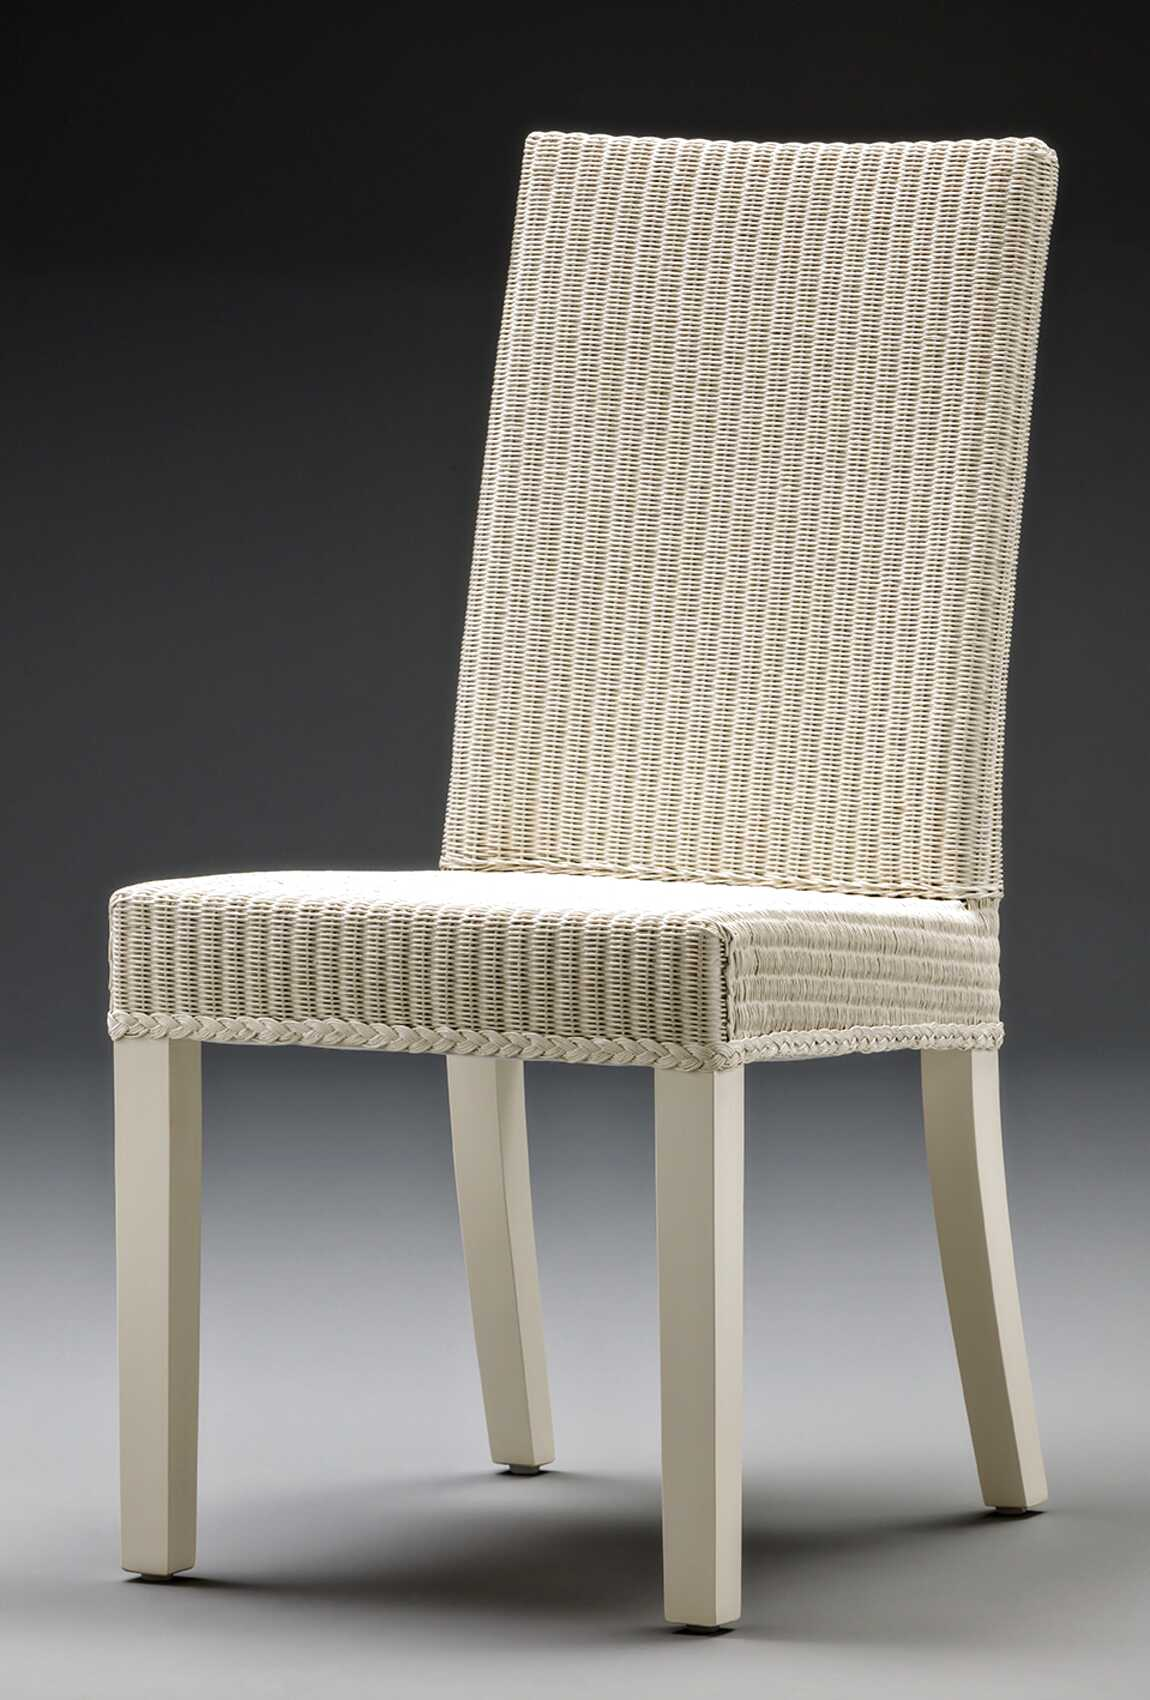 Lloyd Loom Dining Chair for sale in UK | View 28 bargains